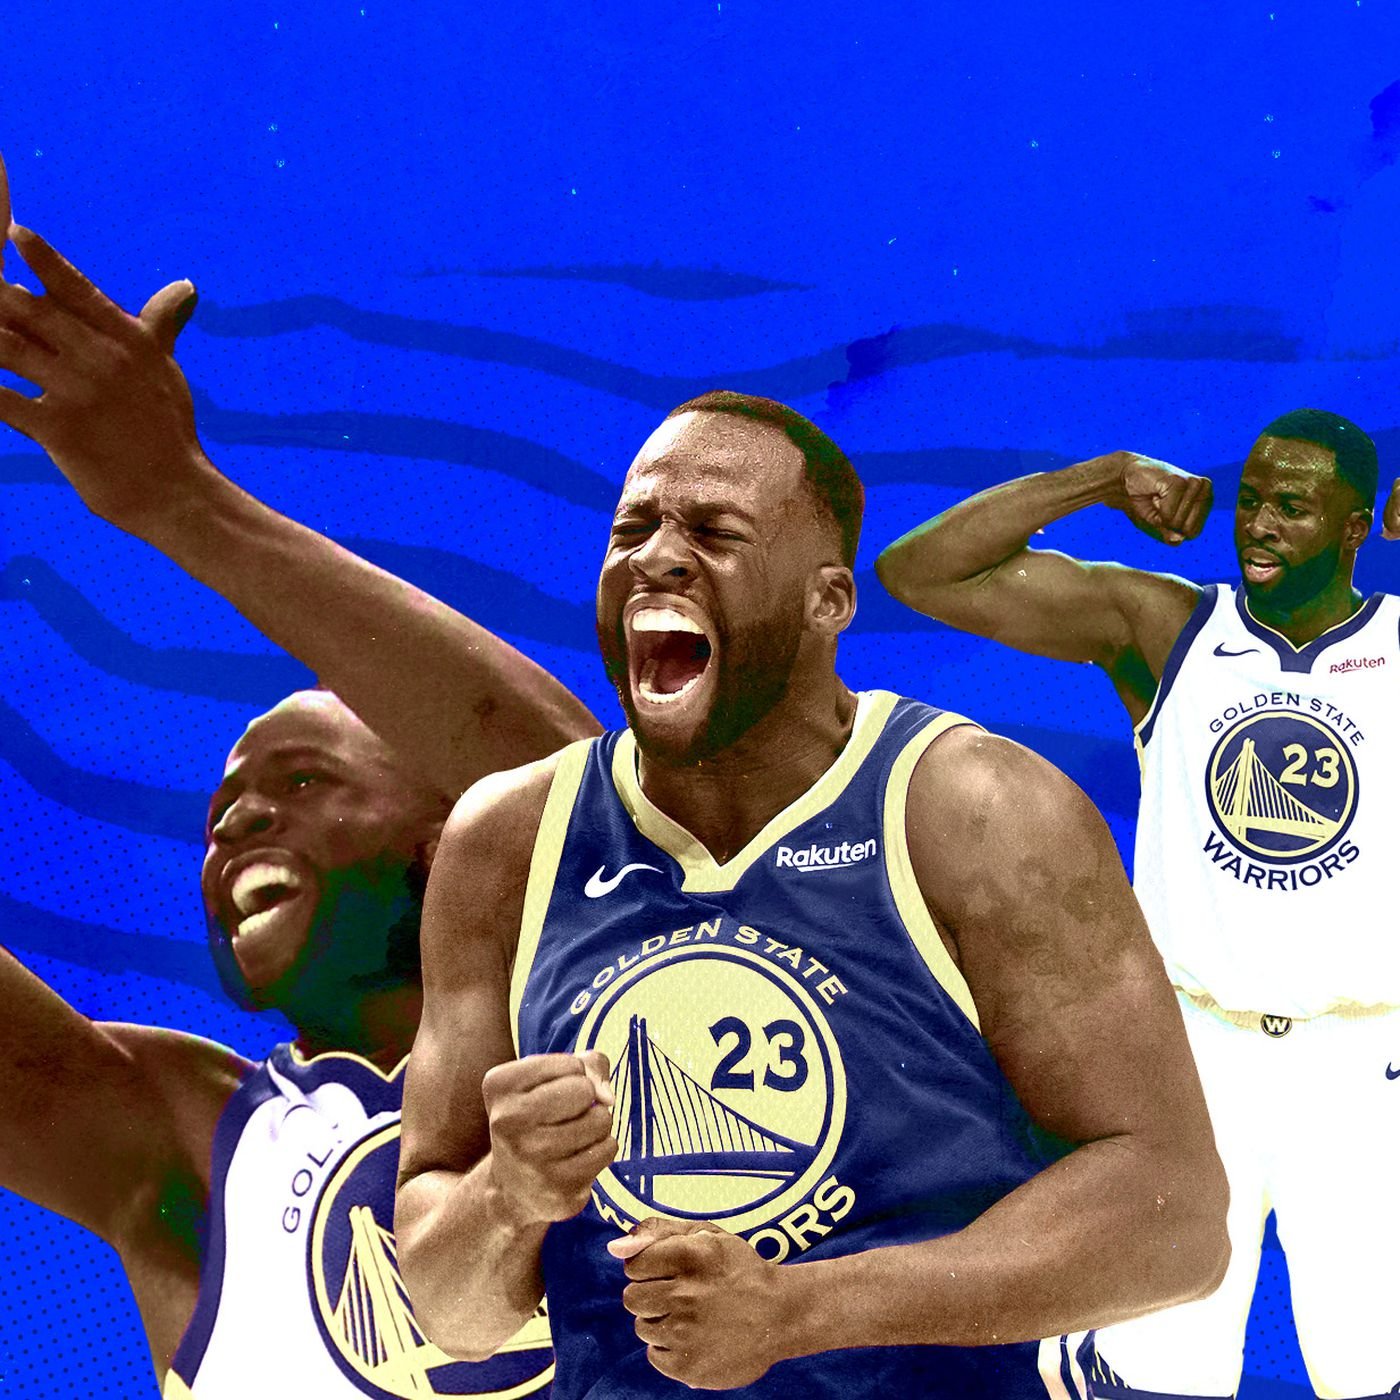 460f0e21f What's next for Draymond Green? Not even he really knows his future -  SBNation.com